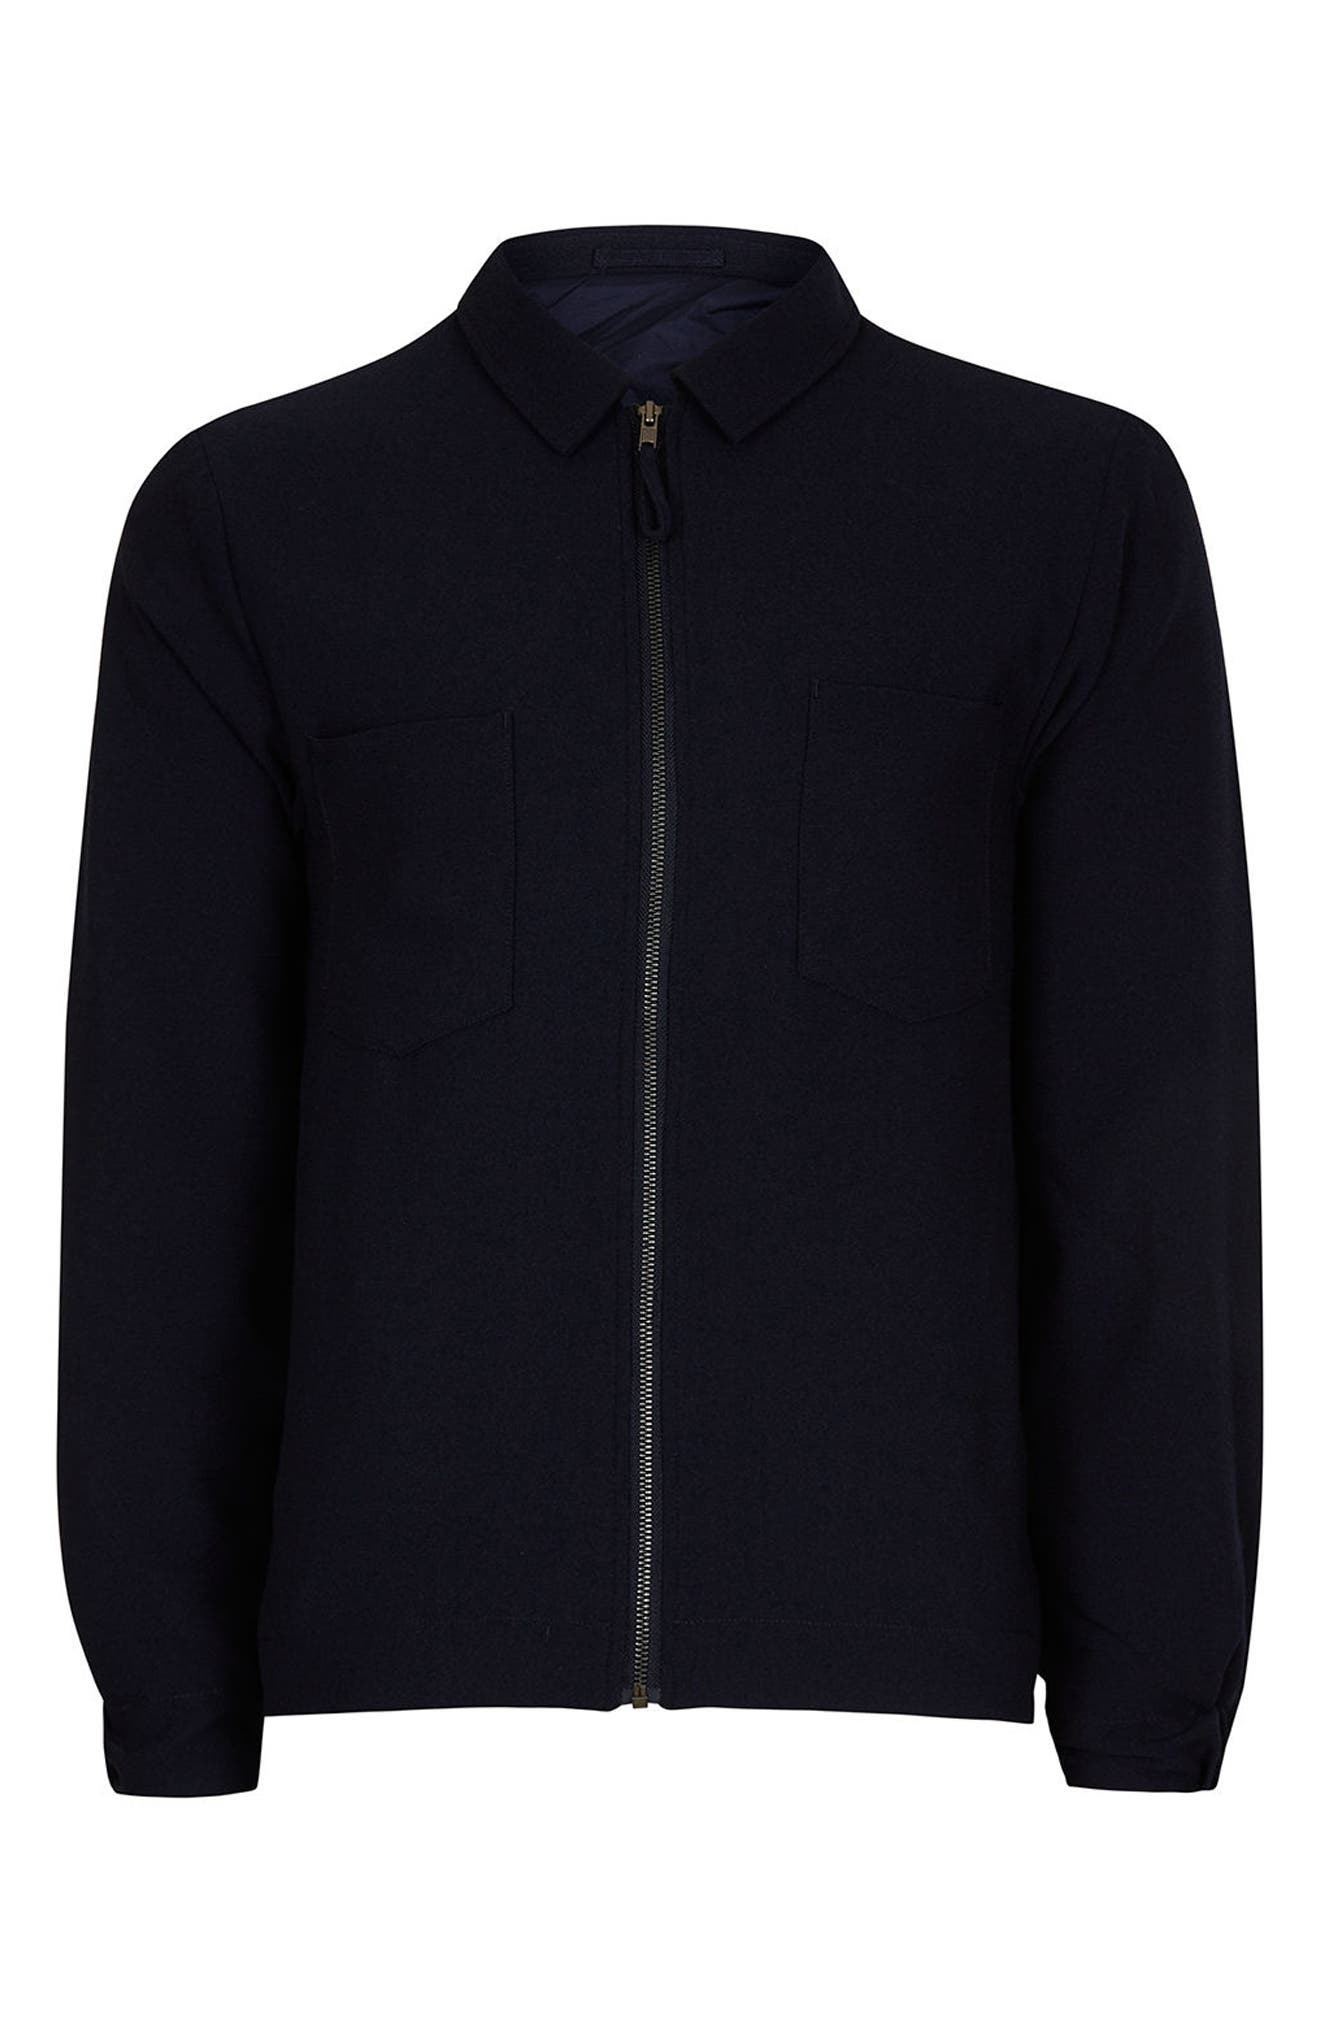 Lightweight Smart Jacket,                             Alternate thumbnail 6, color,                             Navy Blue